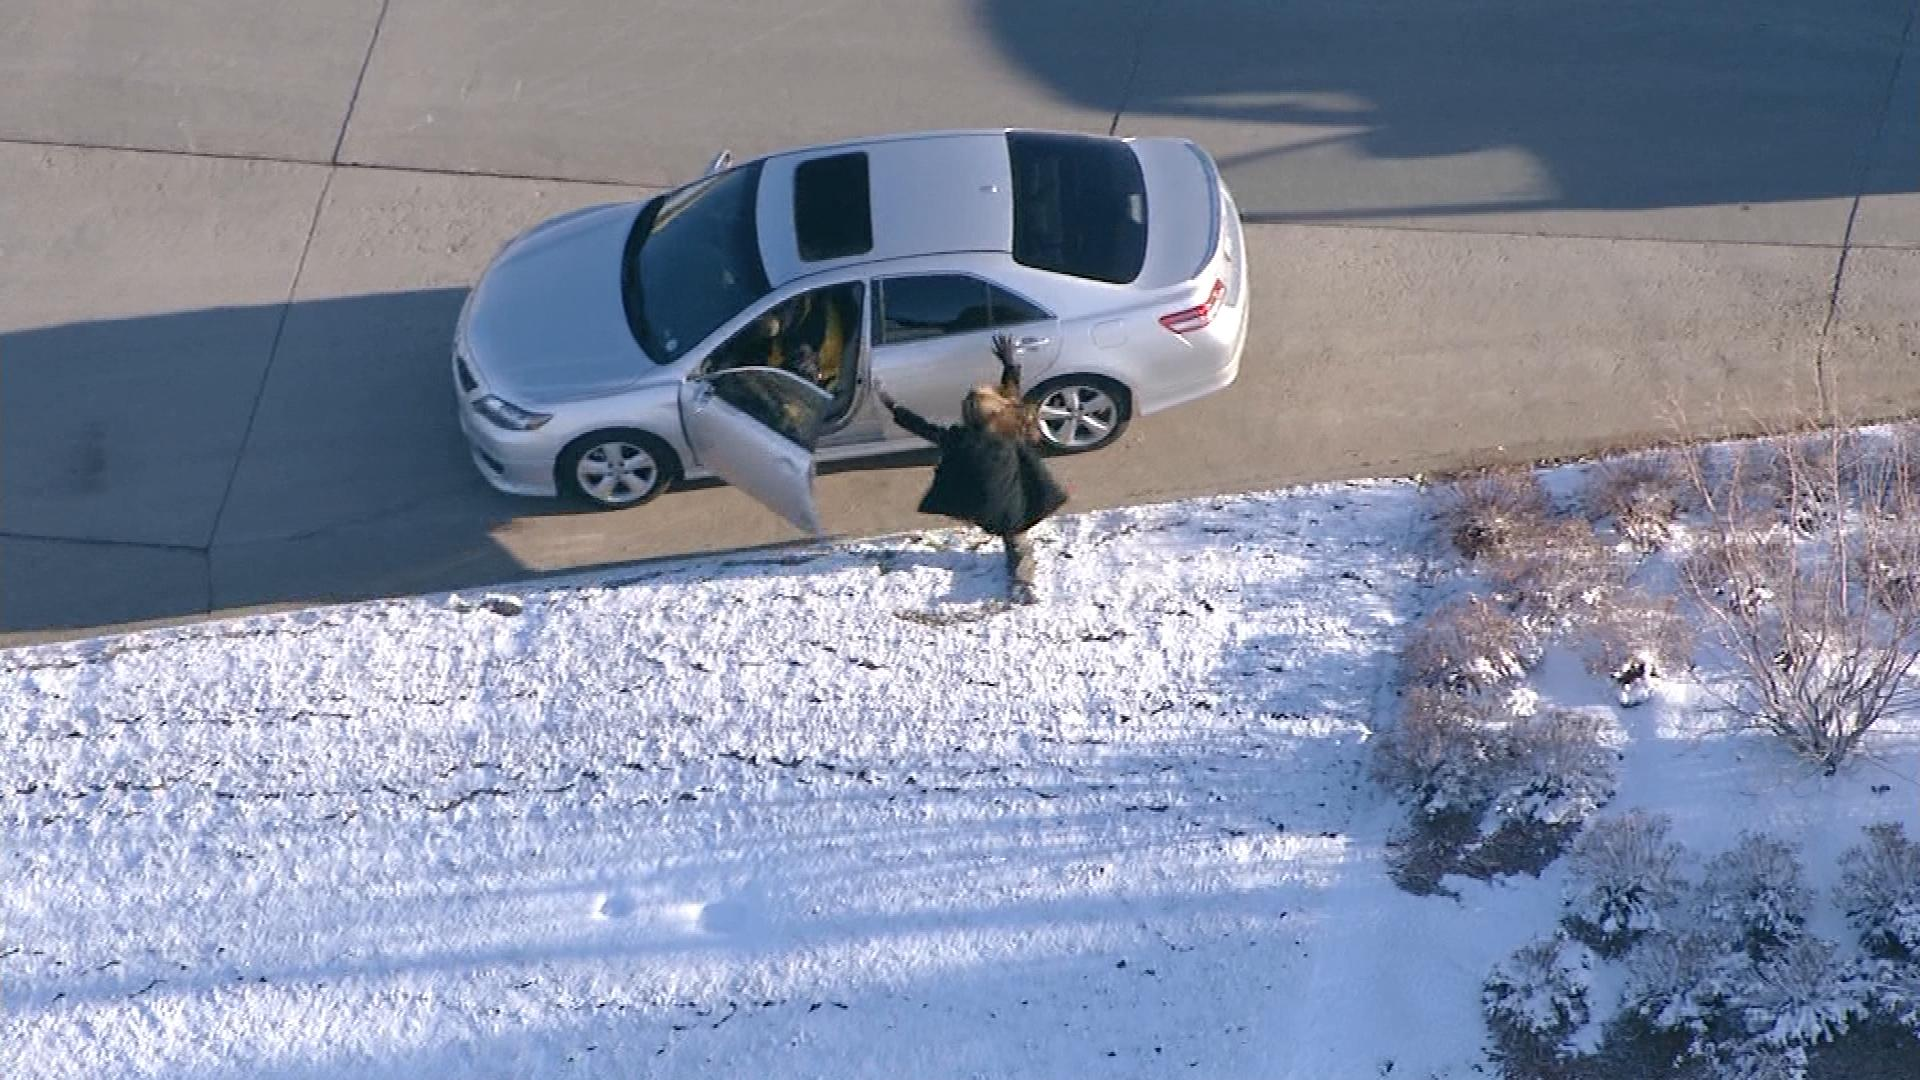 A woman gets carjacked on March 12, 2014, during the wild chase in the Denver metro area. (credit: CBS)